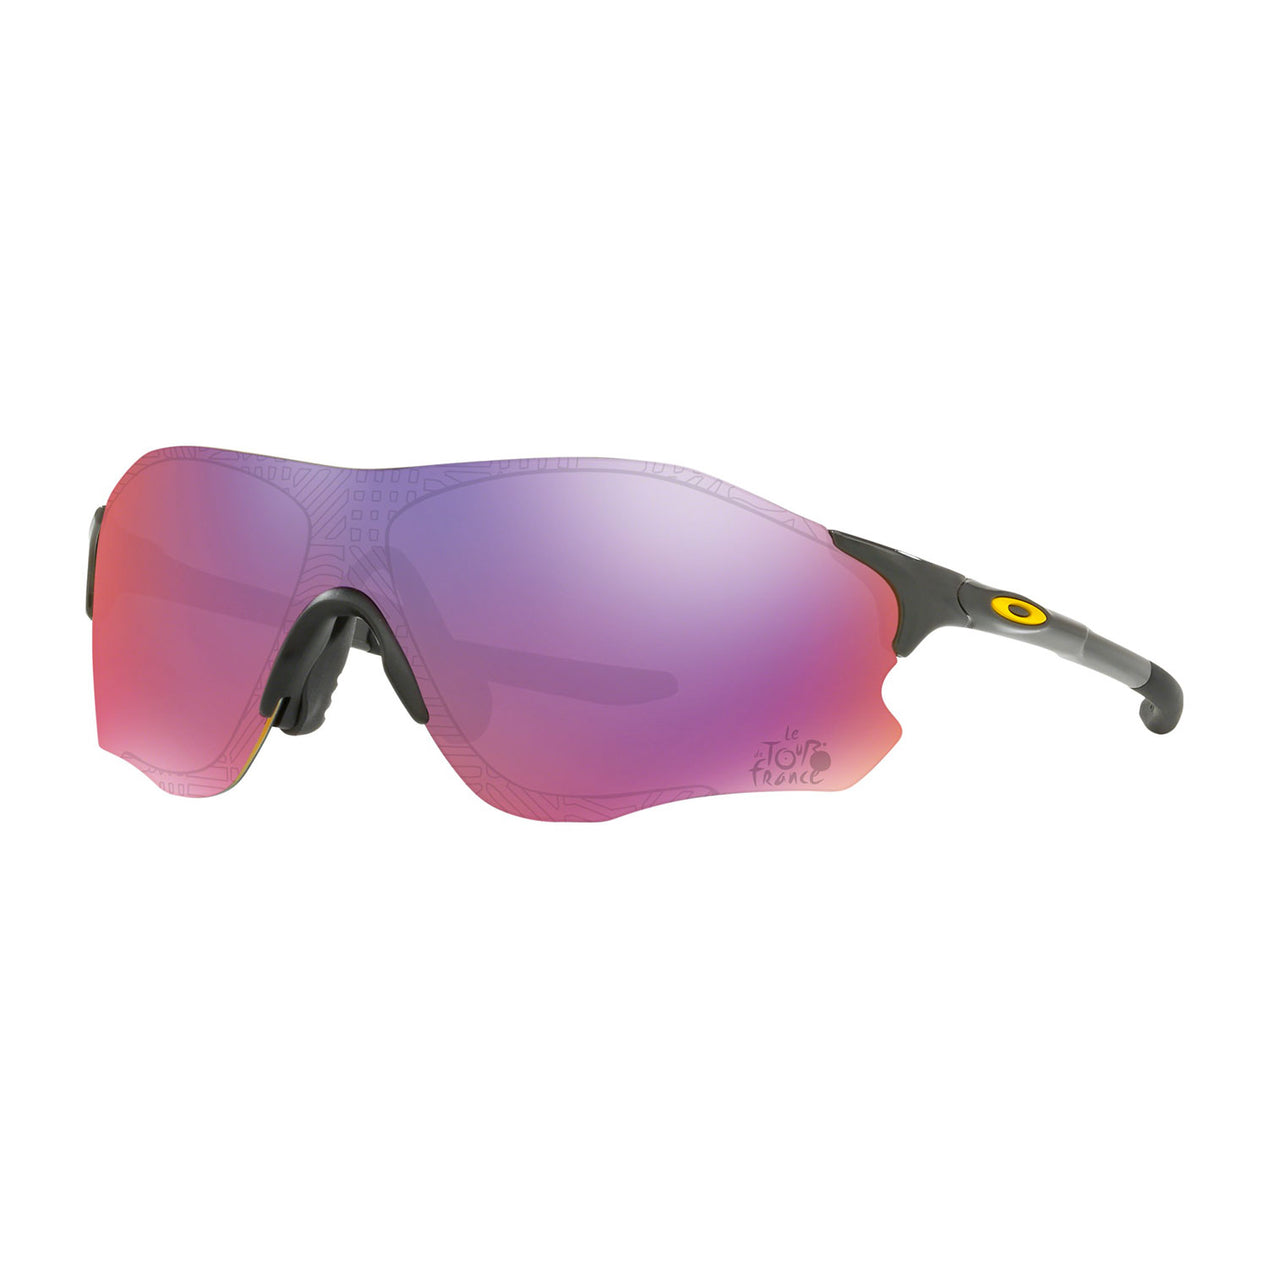 51bc88765fdda Oakley Evzero Path Tdf - Carbon - Prizm Road Lens Sunglasses ...